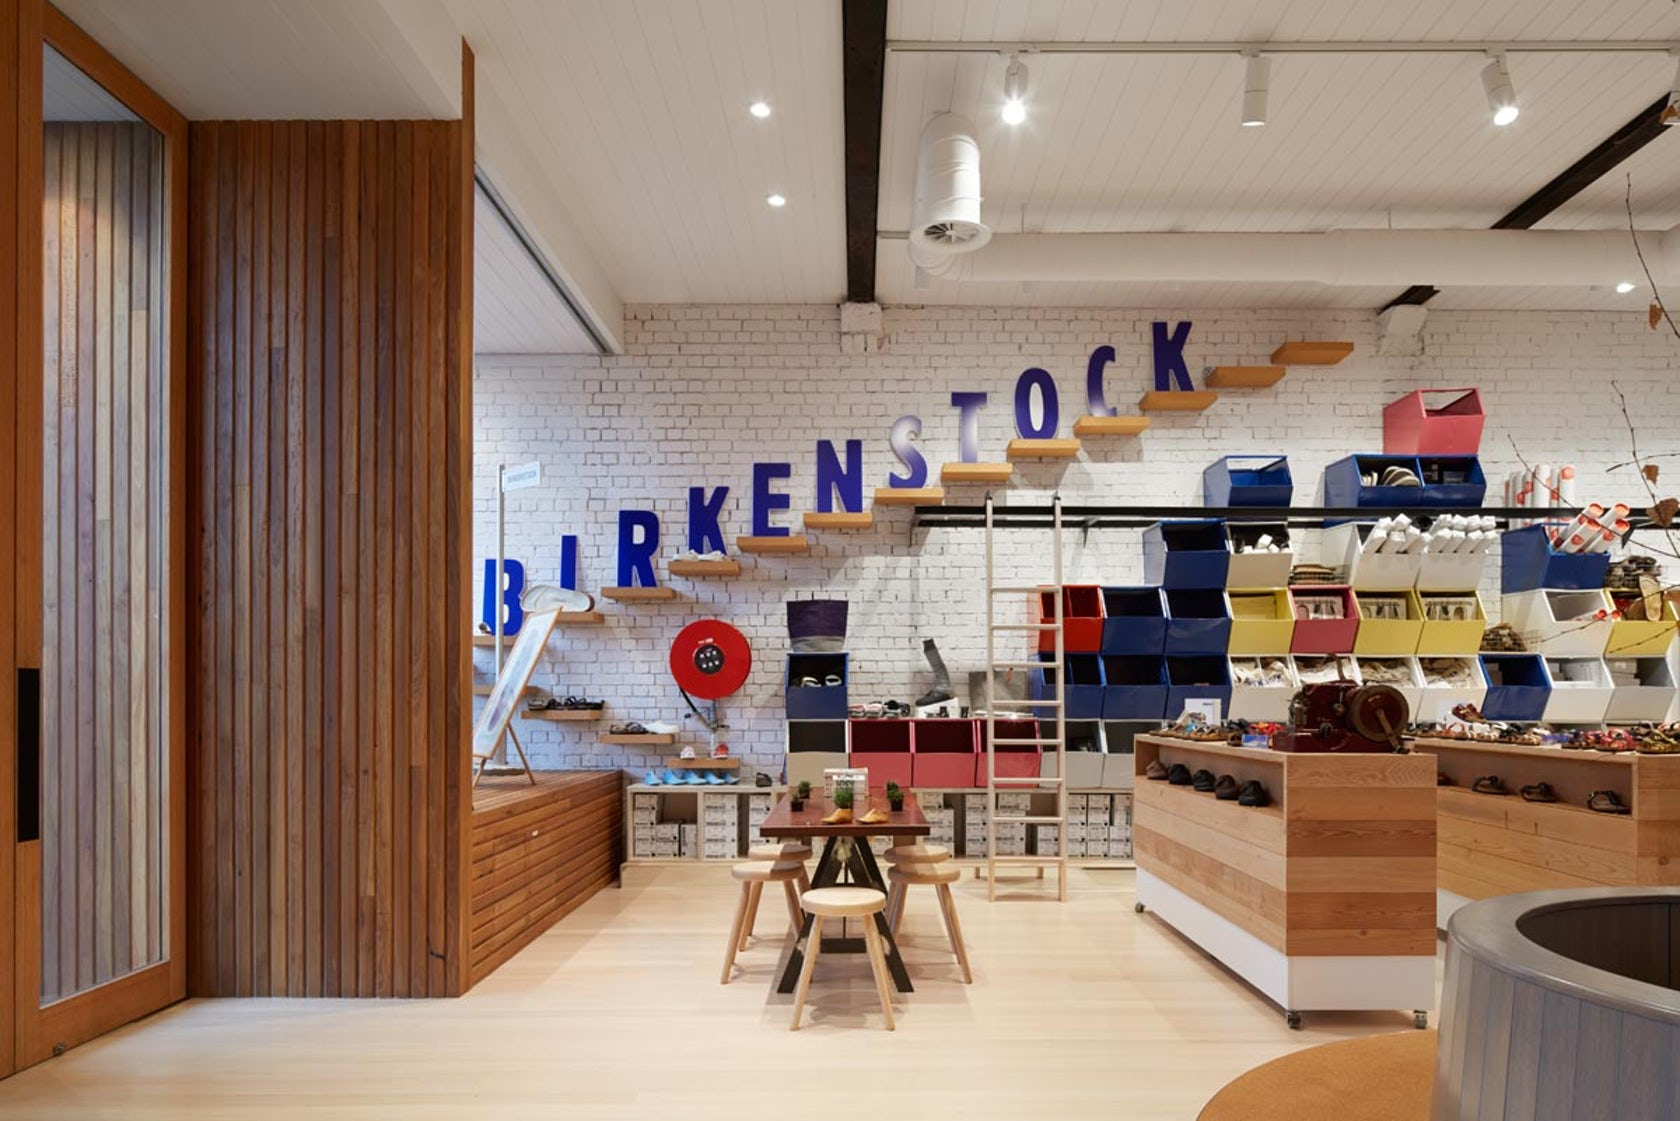 Birkenstock hq retail store clifton hill architizer for Birkenstock store nyc